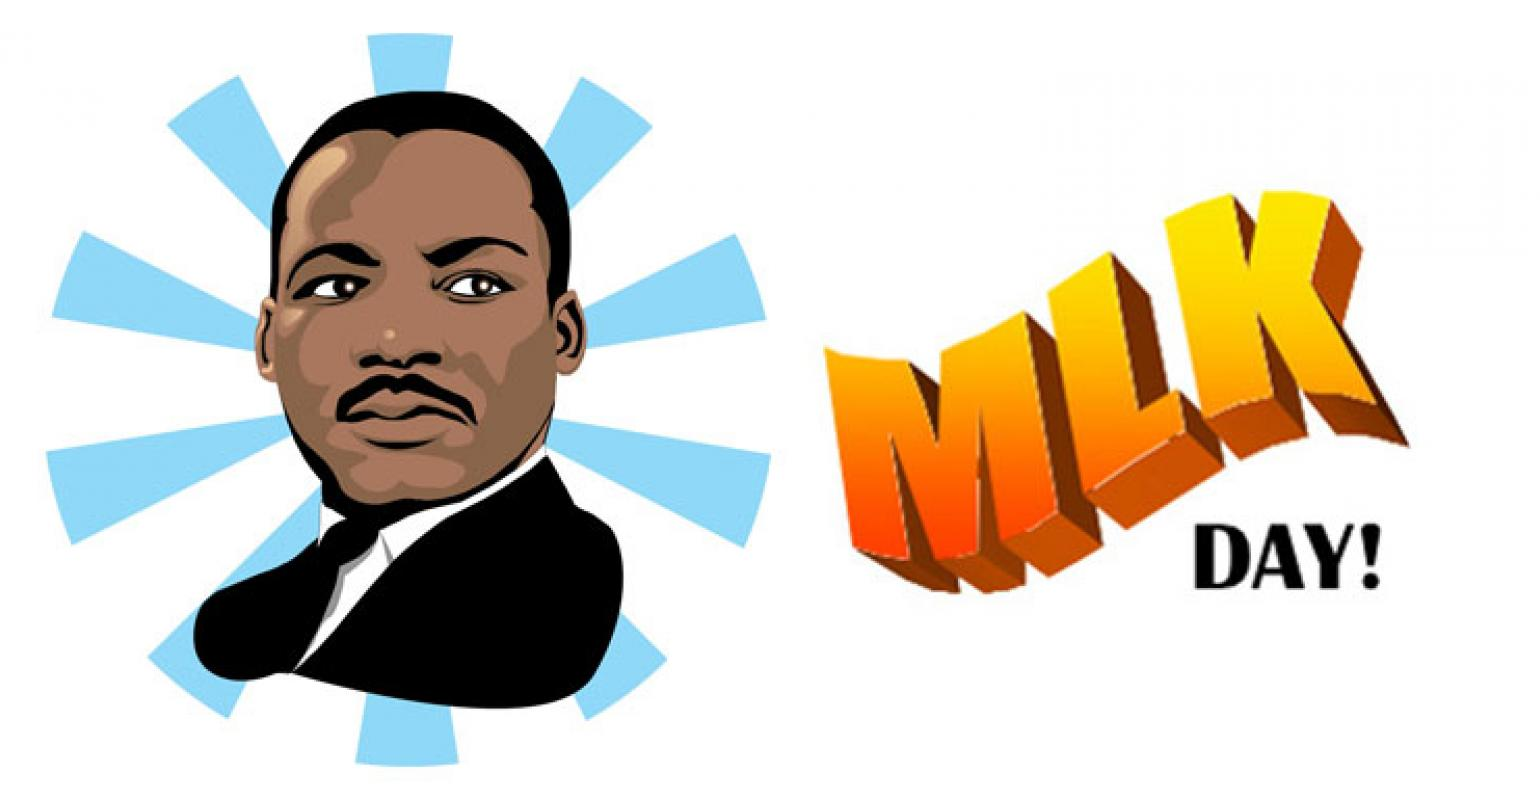 martin luther king jr clipart free free download best black history month clipart images black history month clipart images